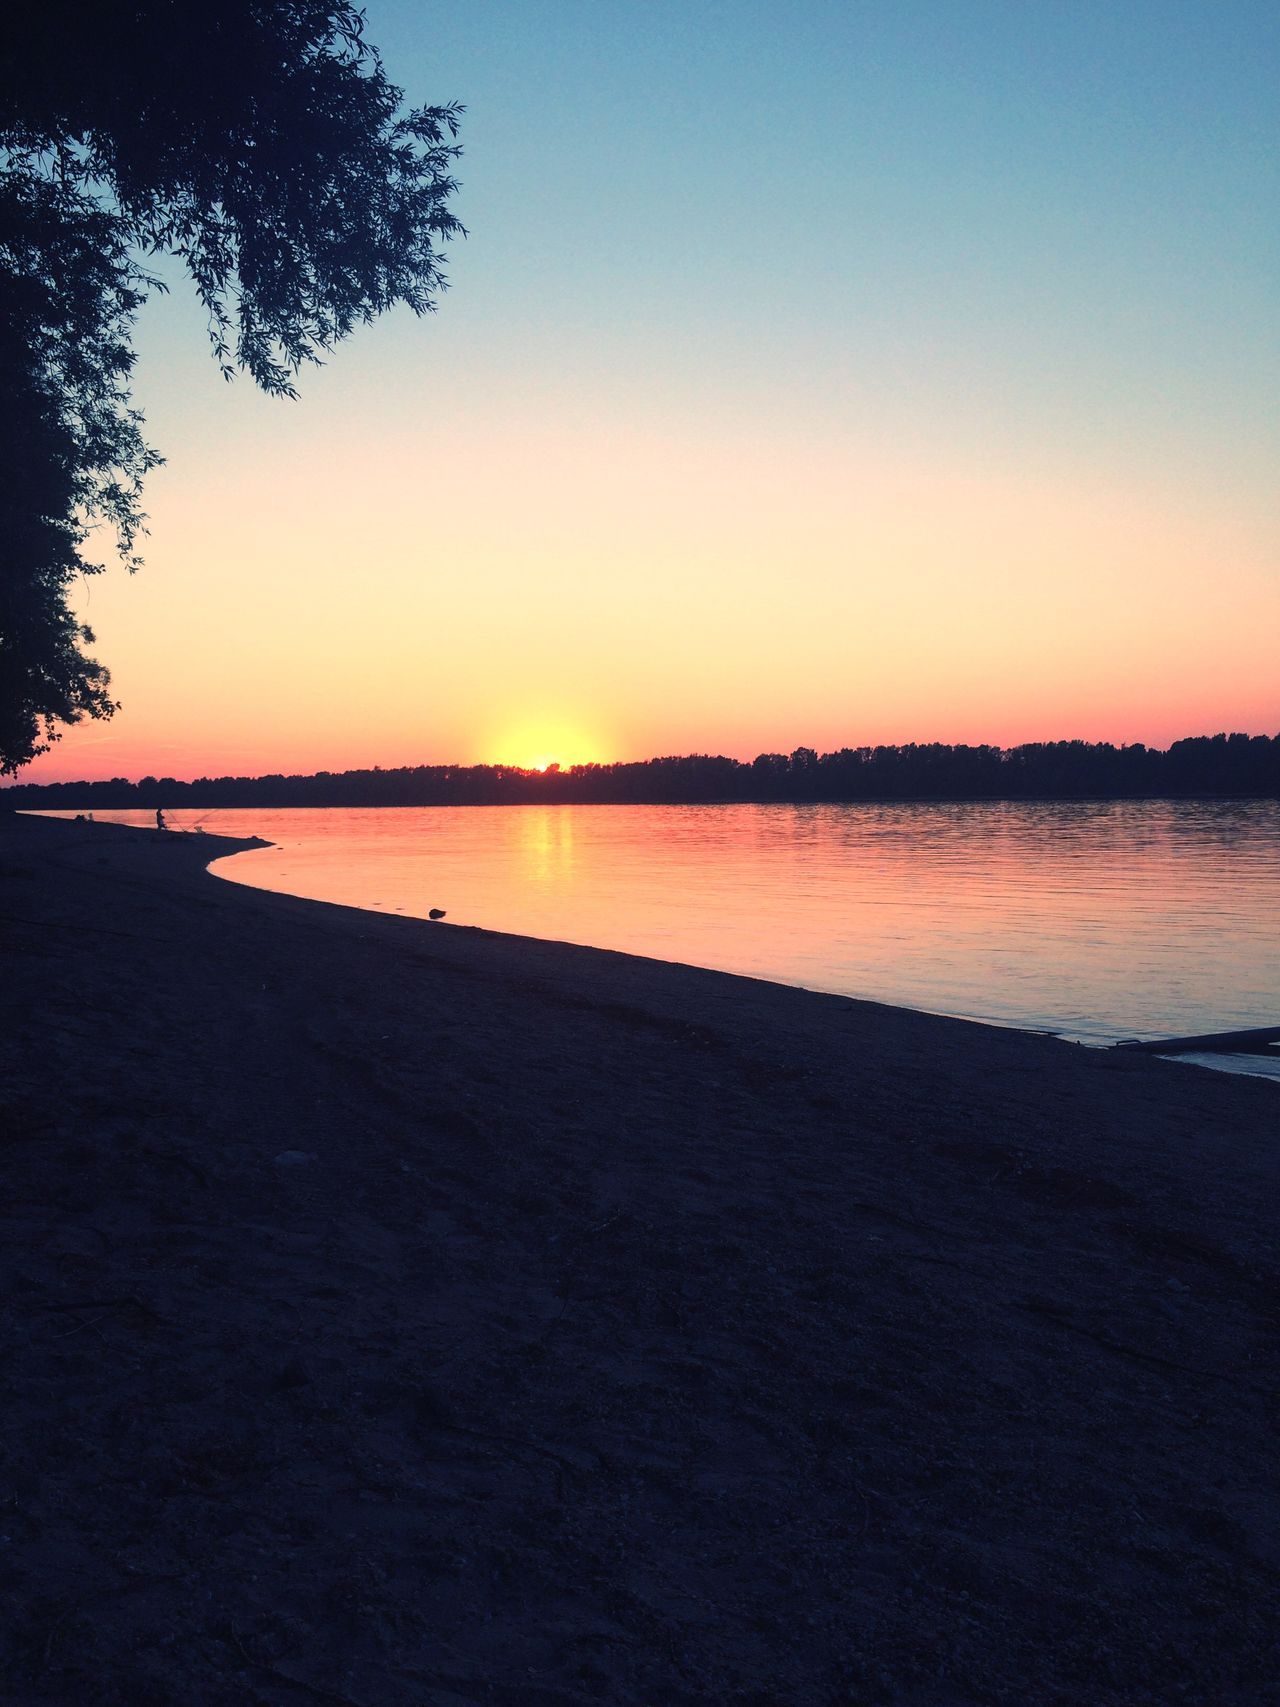 At the end of the day, after a good run 🙋🏼☀️ Danube Hungary Sunset Beautiful